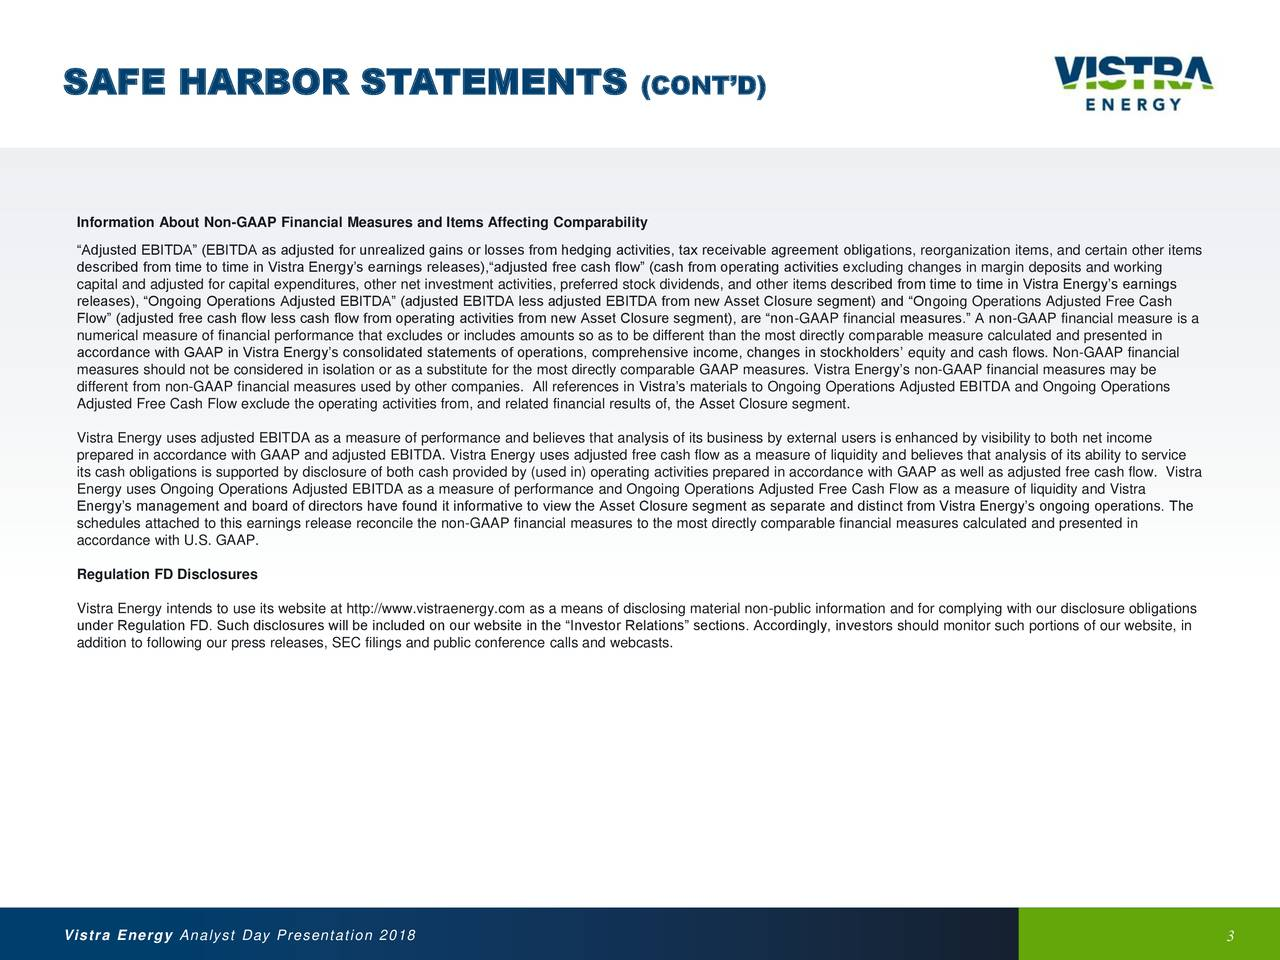 """Information About Non-GAAP Financial Measures and Items Affecting Comparability """"Adjusted EBITDA"""" (EBITDA as adjusted for unrealized gains or losses from hedging activities, tax receivable agreement obligations, reorganization items, and certain other items described from time to time in Vistra Energy's earnings releases),""""adjusted free cash flow"""" (cash from operating activities excluding changes in margin deposits and working capital and adjusted for capital expenditures, other net investment activities, preferred stock dividends, and other items described from time to time in Vistra Energy's earnings releases), """"Ongoing Operations Adjusted EBITDA"""" (adjusted EBITDA less adjusted EBITDA from new Asset Closure segment) and """"Ongoing Operations Adjusted Free Cash Flow"""" (adjusted free cash flow less cash flow from operating activities from new Asset Closure segment), are """"non-GAAP financial measures."""" A non-GAAP financial measure is a numerical measure of financial performance that excludes or includes amounts so as to be different than the most directly comparable measure calculated and presented in accordance with GAAP in Vistra Energy's consolidated statements of operations, comprehensive income, changes in stockholders' equity and cash flows. Non-GAAP financial measures should not be considered in isolation or as a substitute for the most directly comparable GAAP measures. Vistra Energy's non-GAAP financial measures may be different from non-GAAP financial measures used by other companies. All references in Vistra's materials to Ongoing Operations Adjusted EBITDA and Ongoing Operations Adjusted Free Cash Flow exclude the operating activities from, and related financial results of, the Asset Closure segment. Vistra Energy uses adjusted EBITDA as a measure of performance and believes that analysis of its business by external users is enhanced by visibility to both net income prepared in accordance with GAAP and adjusted EBITDA. Vistra Energy uses adjusted free cash fl"""